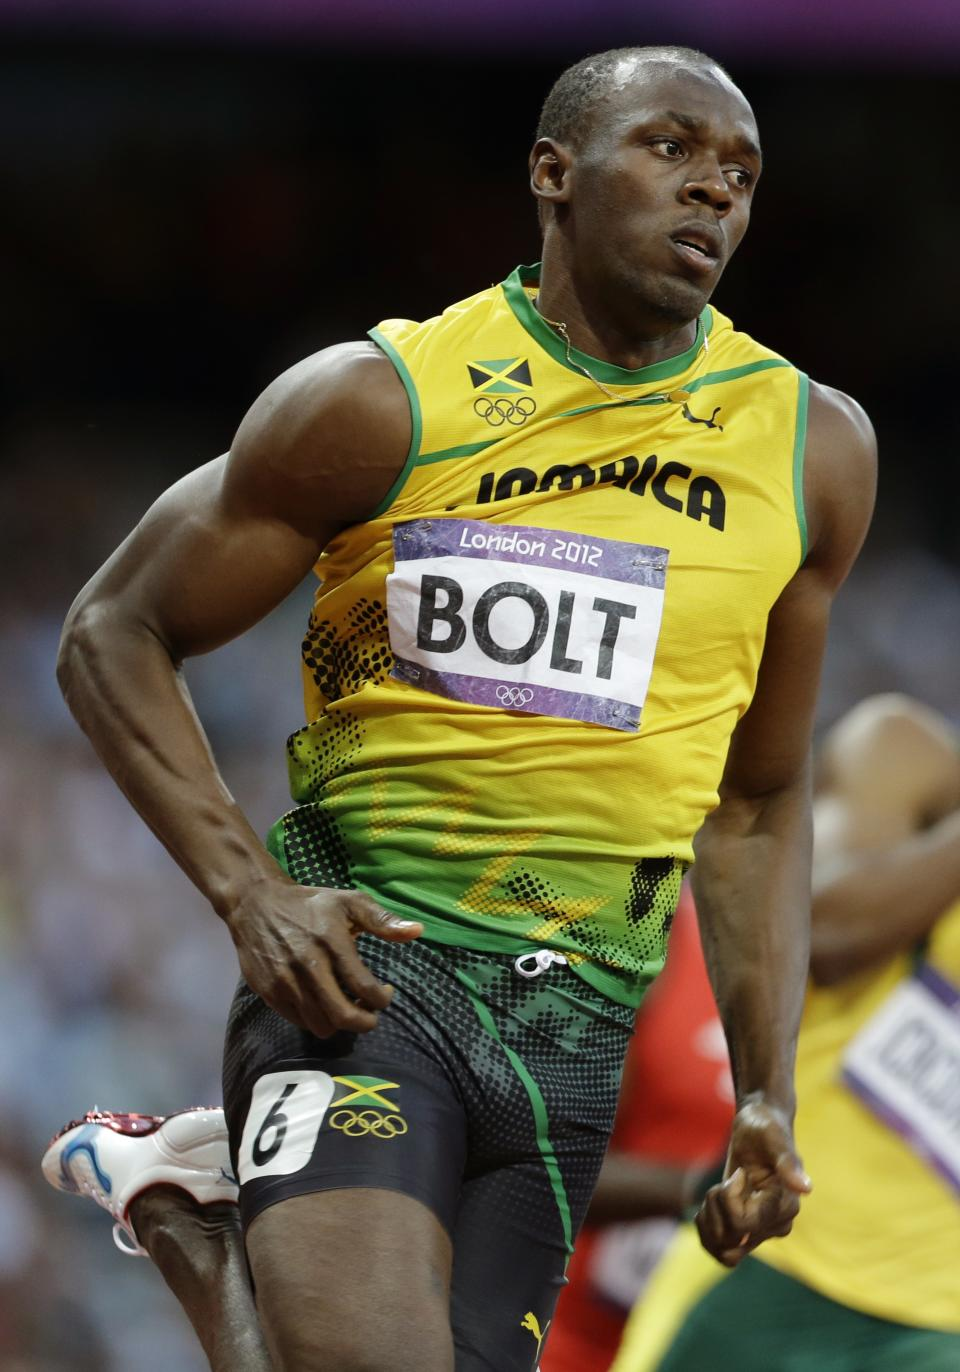 Jamaica's Usain Bolt competes in a men's 200-meter semifinal during the athletics in the Olympic Stadium at the 2012 Summer Olympics, London, Wednesday, Aug. 8, 2012. (AP Photo/Ben Curtis)